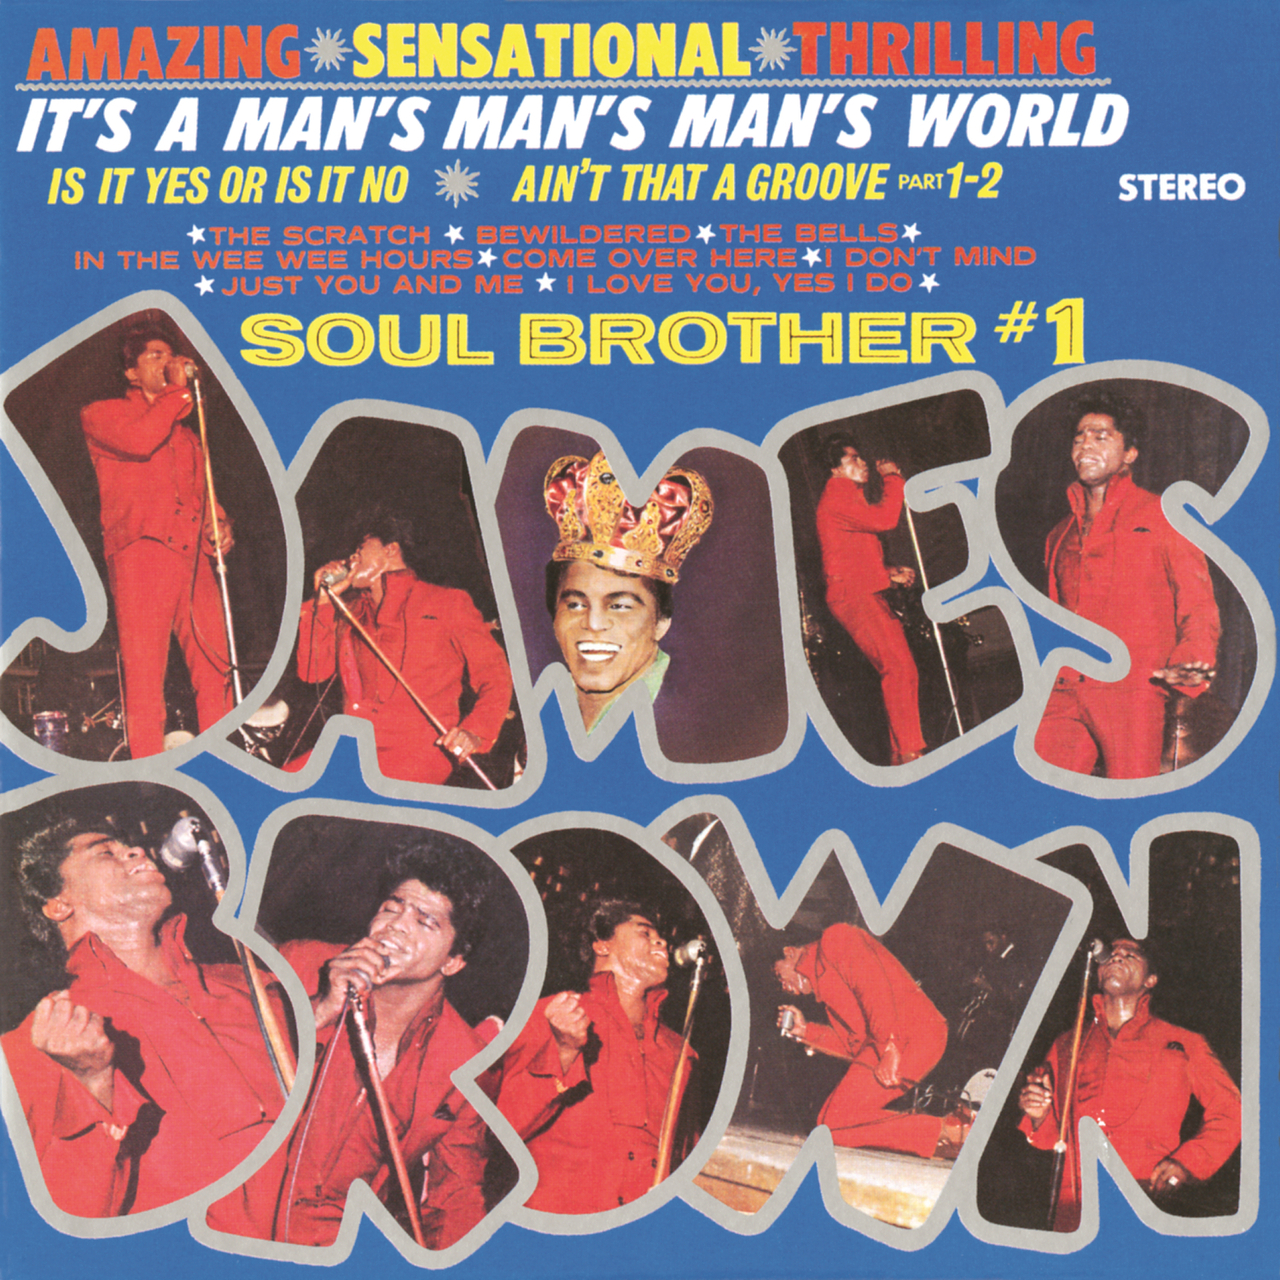 It's a man's, man's, man's world: Soul brother #1